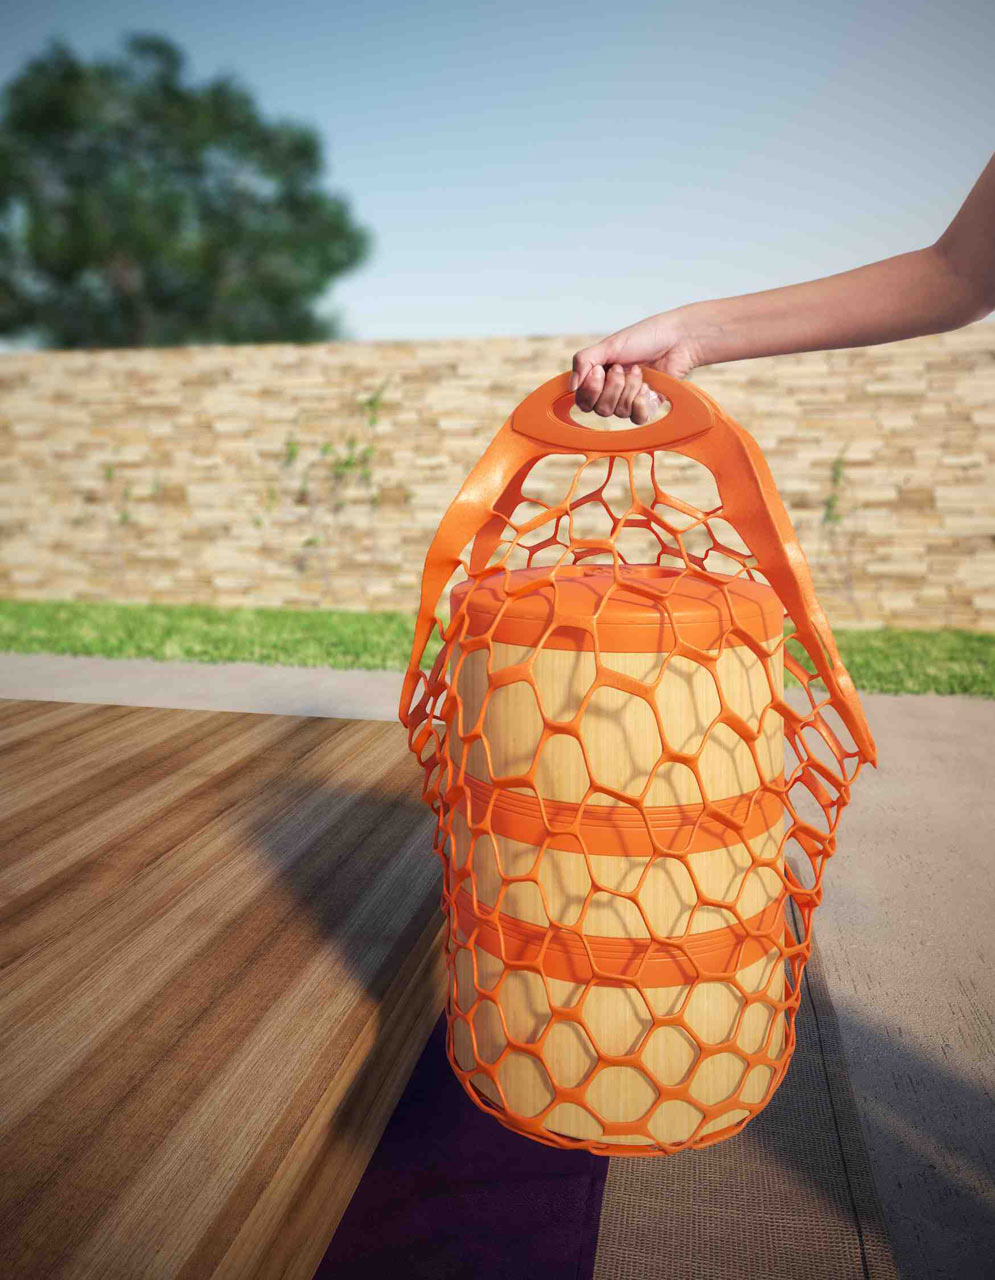 Combine: An Eco-Chic Picnic Set from Bold_a design company